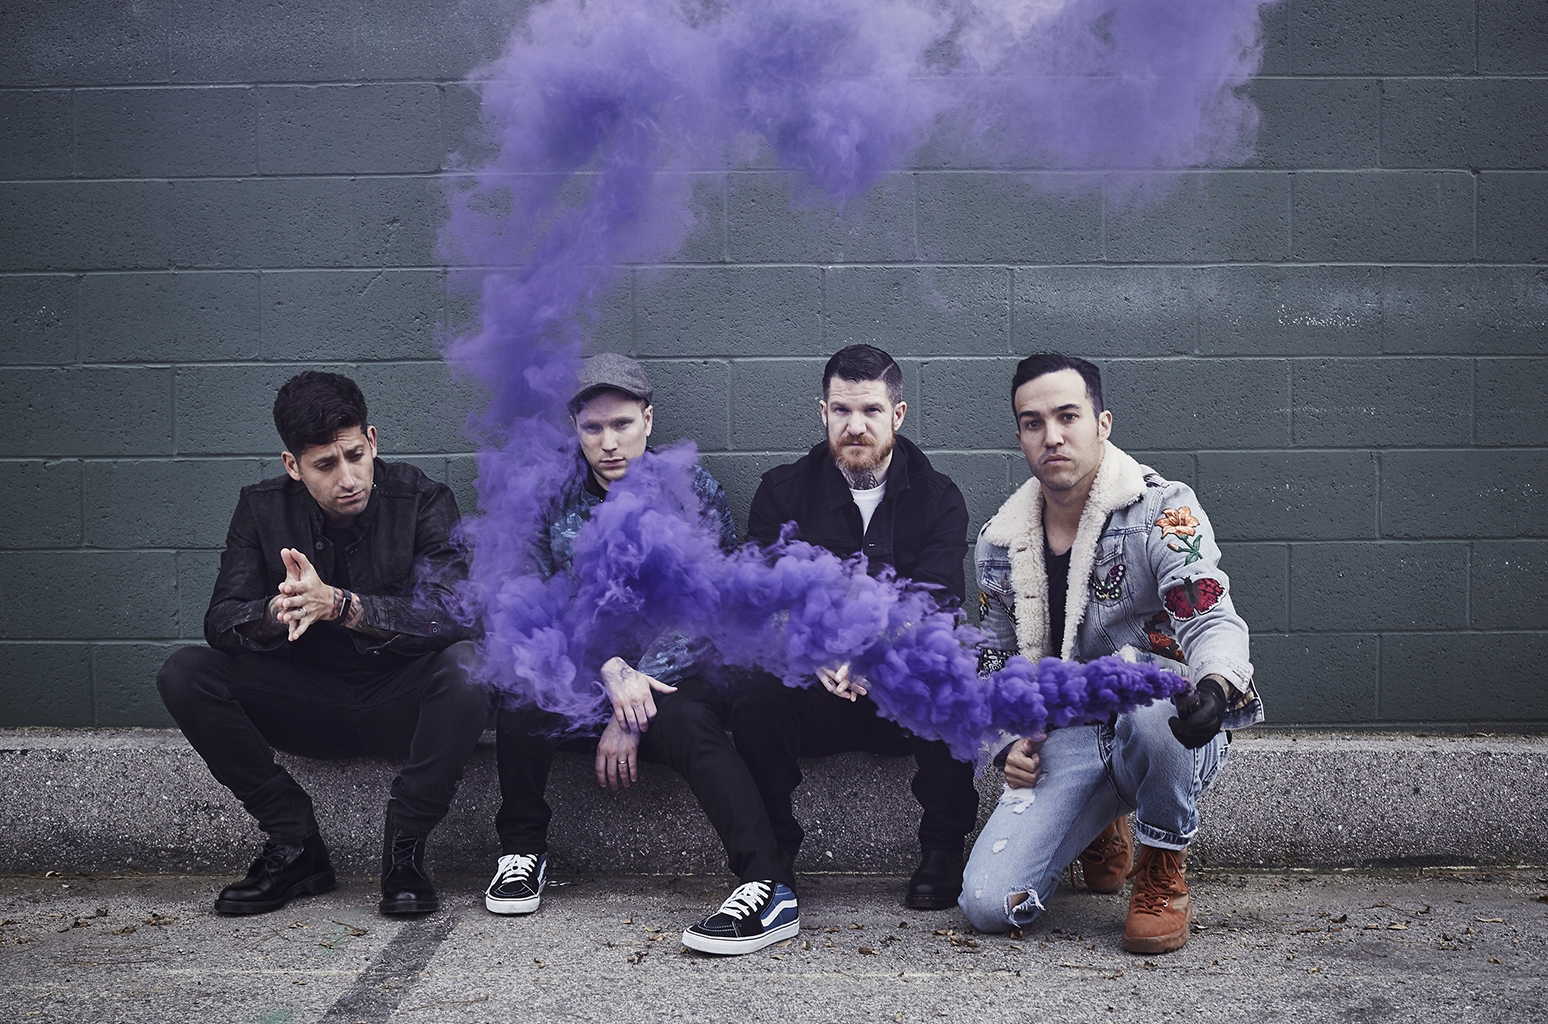 Mania Album Cover Fall Out Boy Wallpaper Watch Fall Out Boy Performed Hold Me Tight Or Don T In